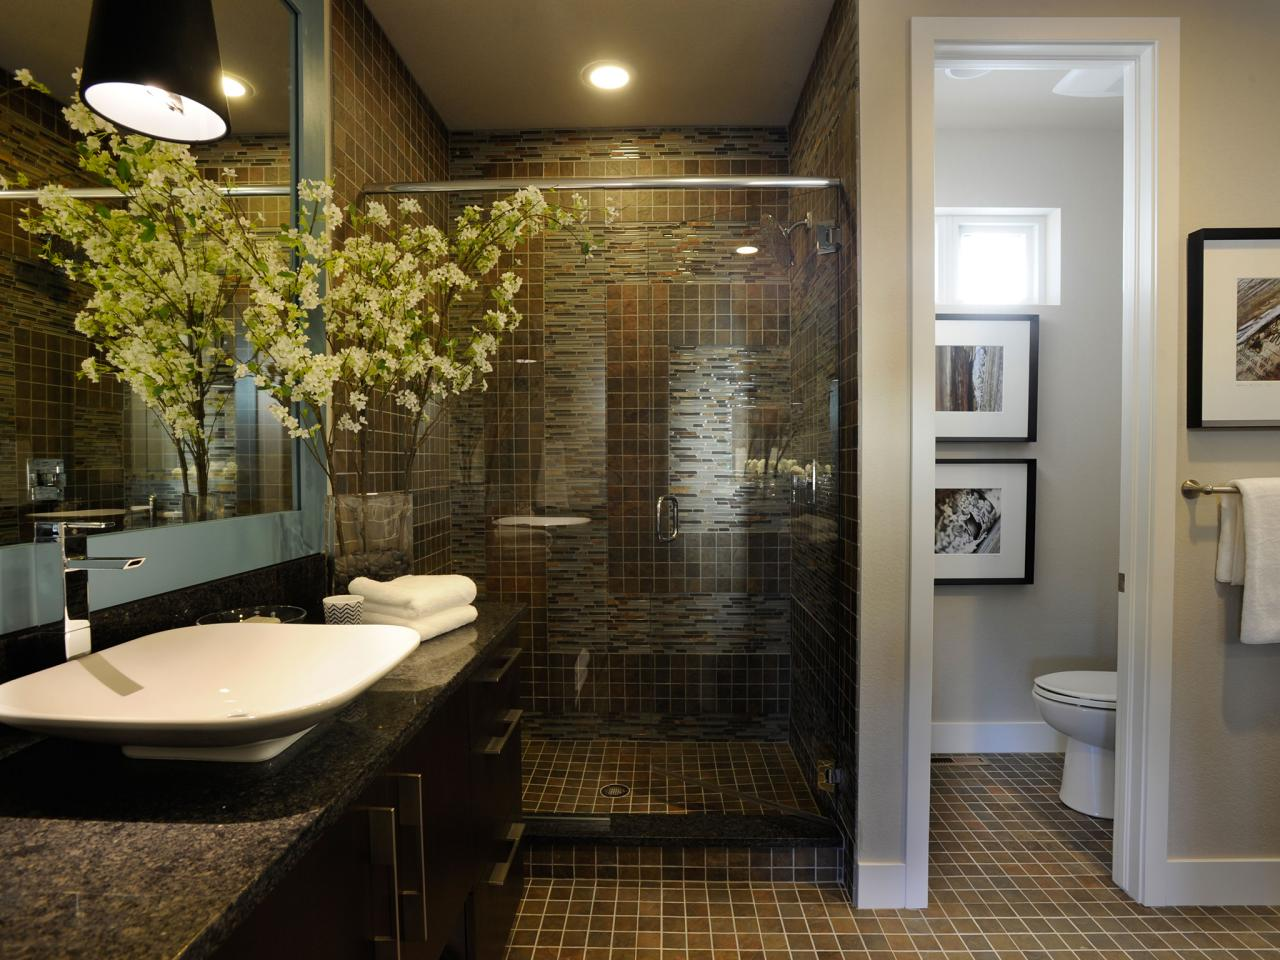 bathroom space planning - Bathroom Renovation Designs